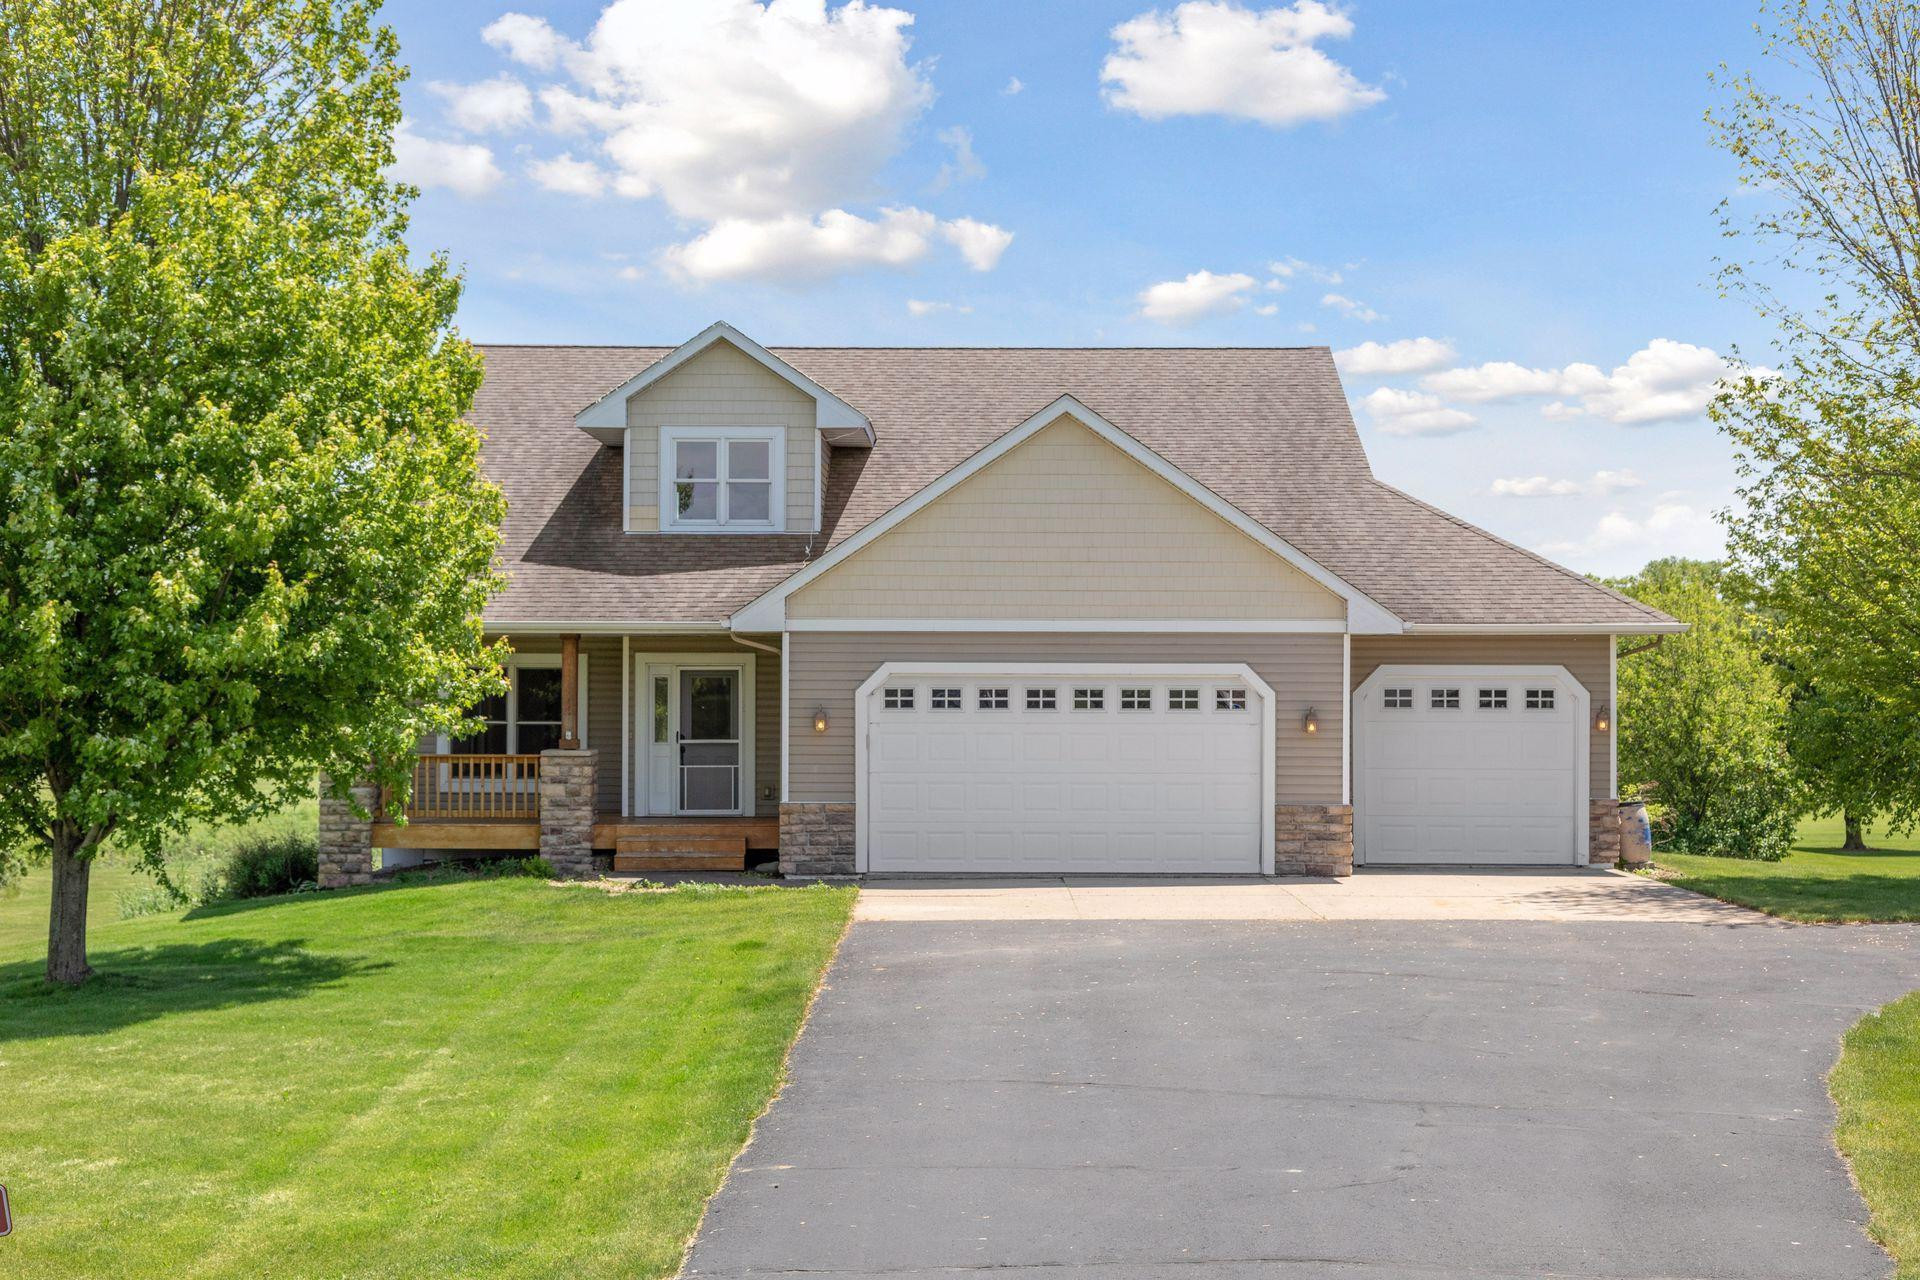 Don't miss this chance to secure this beautiful home